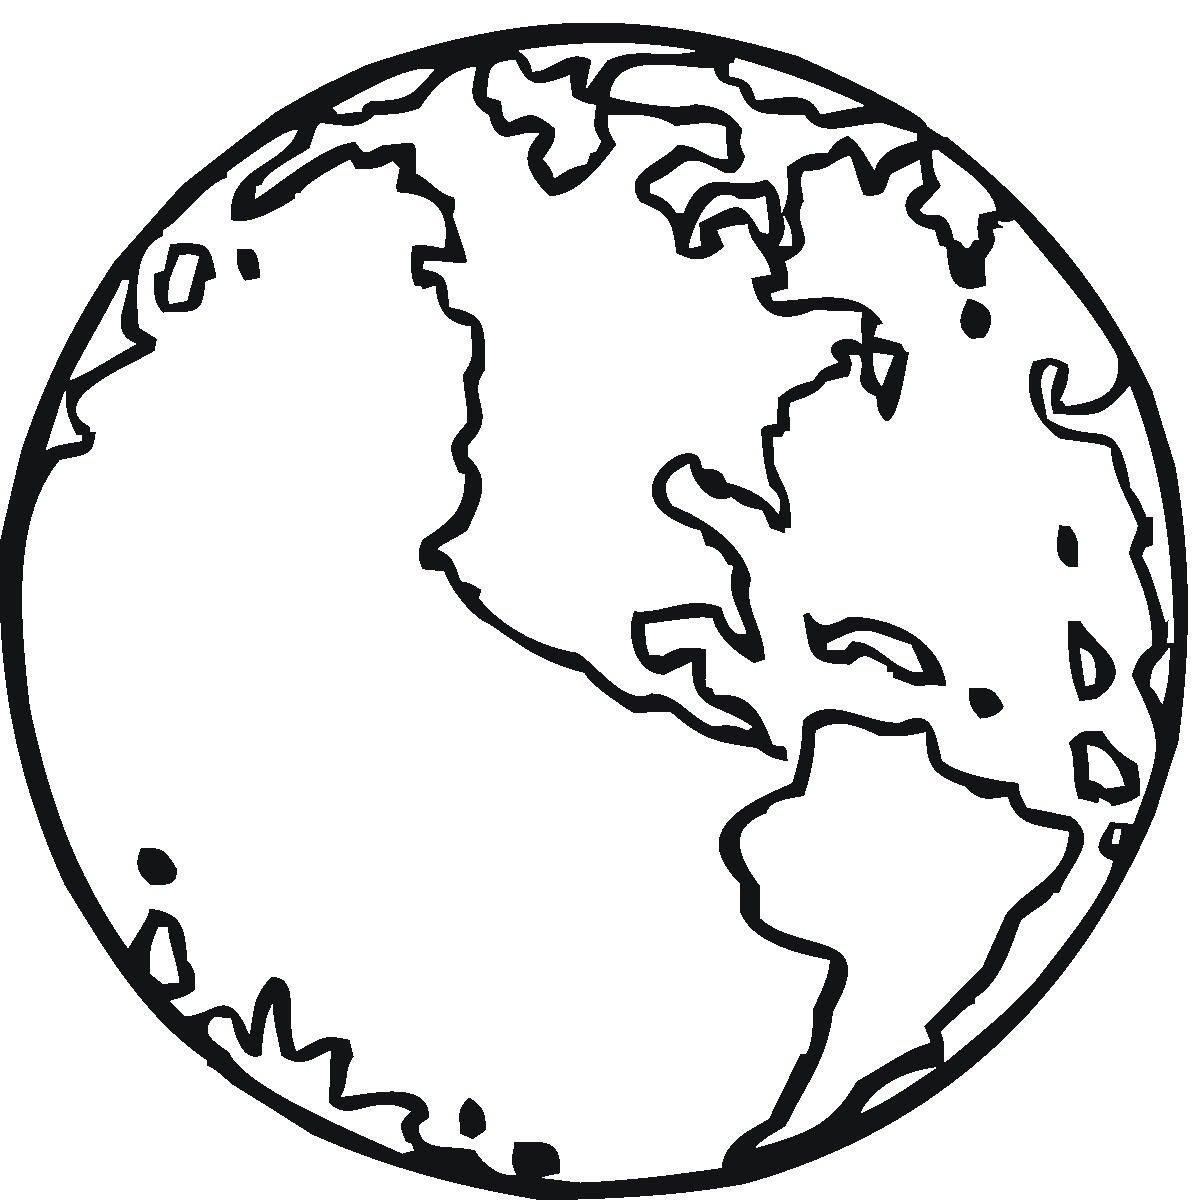 Free Printable Earth Coloring Pages For Kids | Earth ...